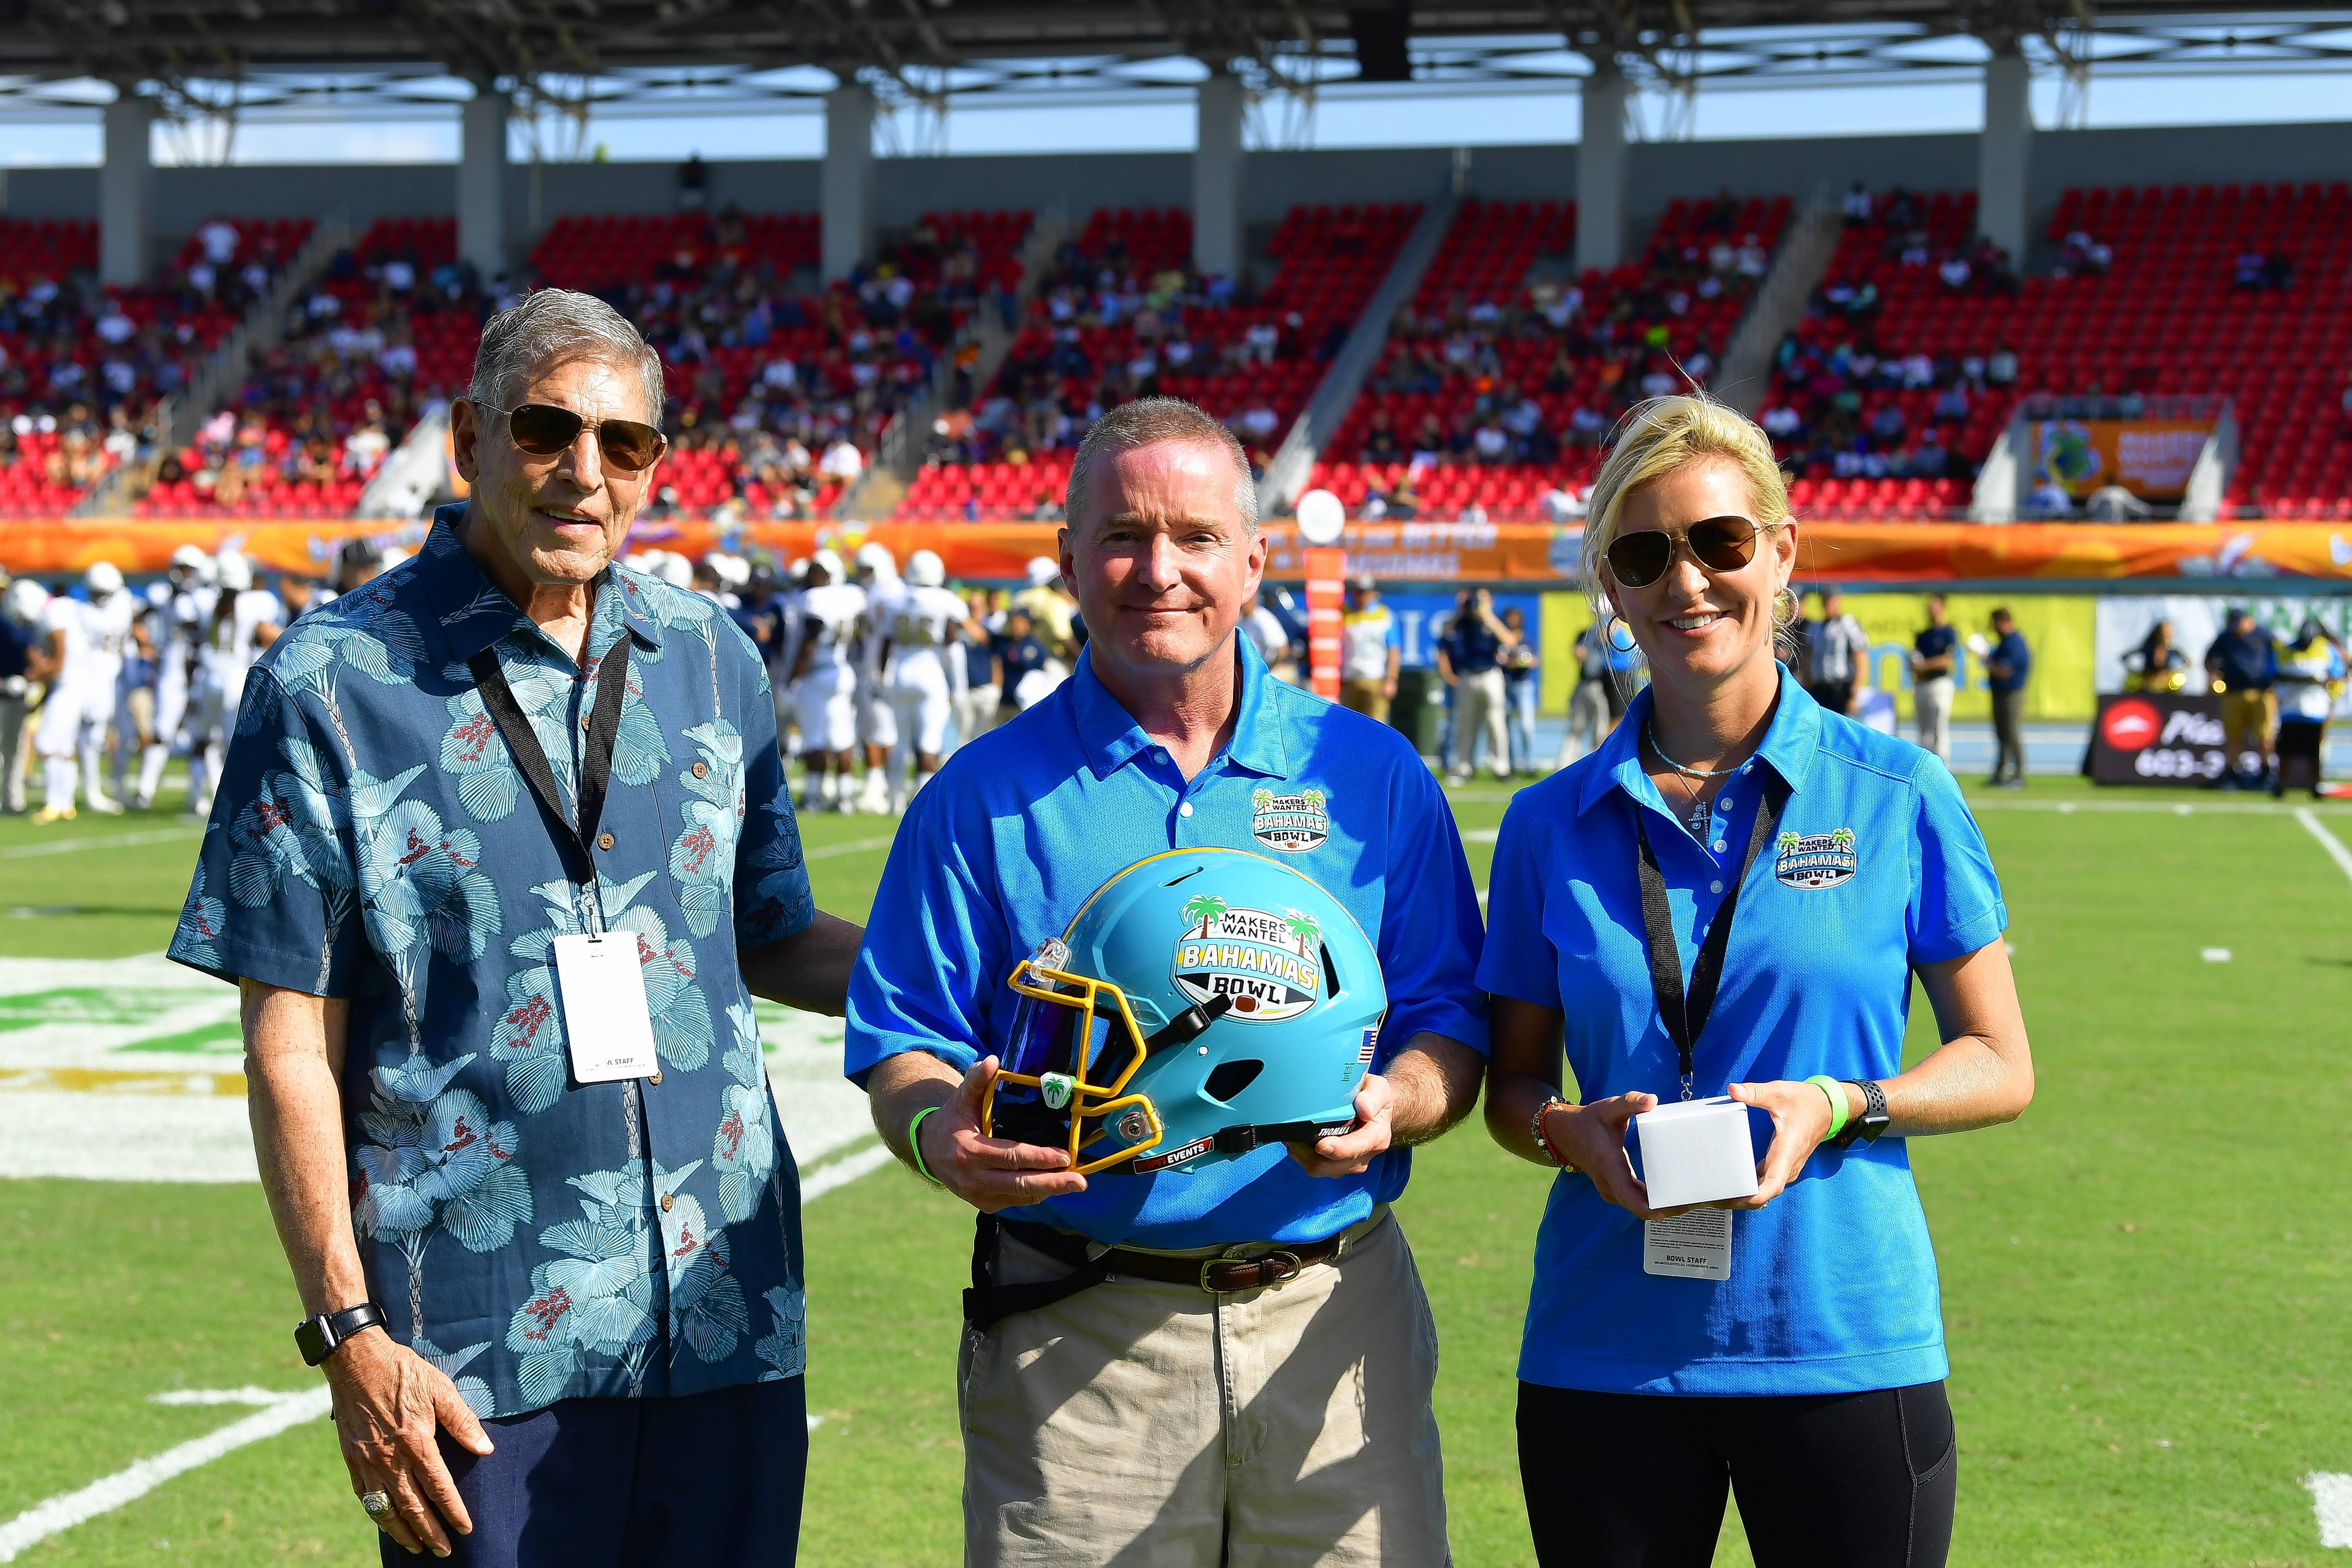 Makers Wanted Bahamas Bowl executives Richard Giannini, left, and Lea Miller-Tooley flank Elk Grove Village Mayor Craig Johnson during an on-field presentation in the first quarter of the 2018 Makers Wanted Bahamas Bowl at Thomas A. Robinson National Stadium in Nassau, Bahamas.